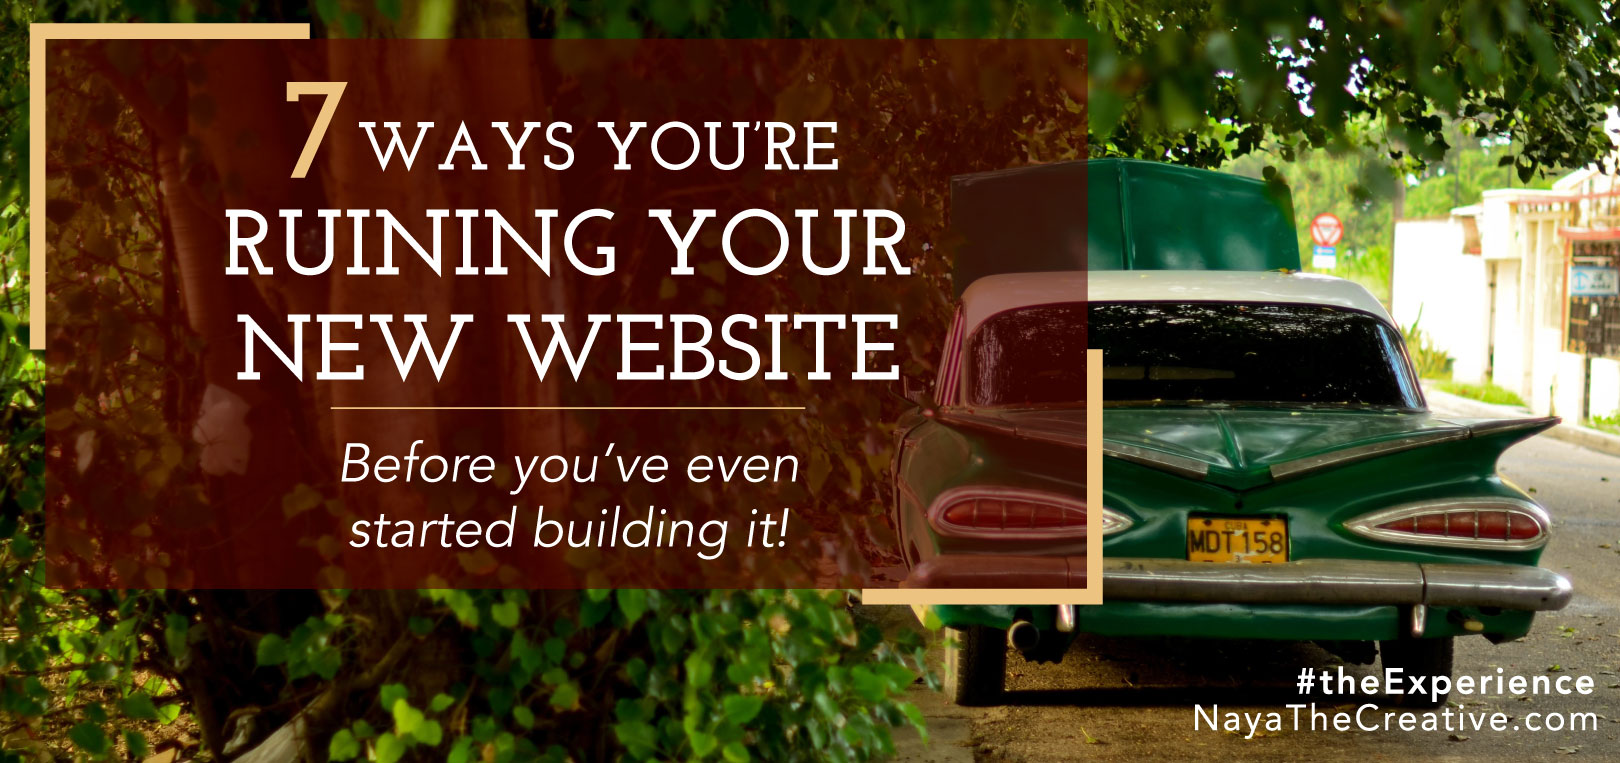 Seven Ways You're Ruining Your New Website Hero